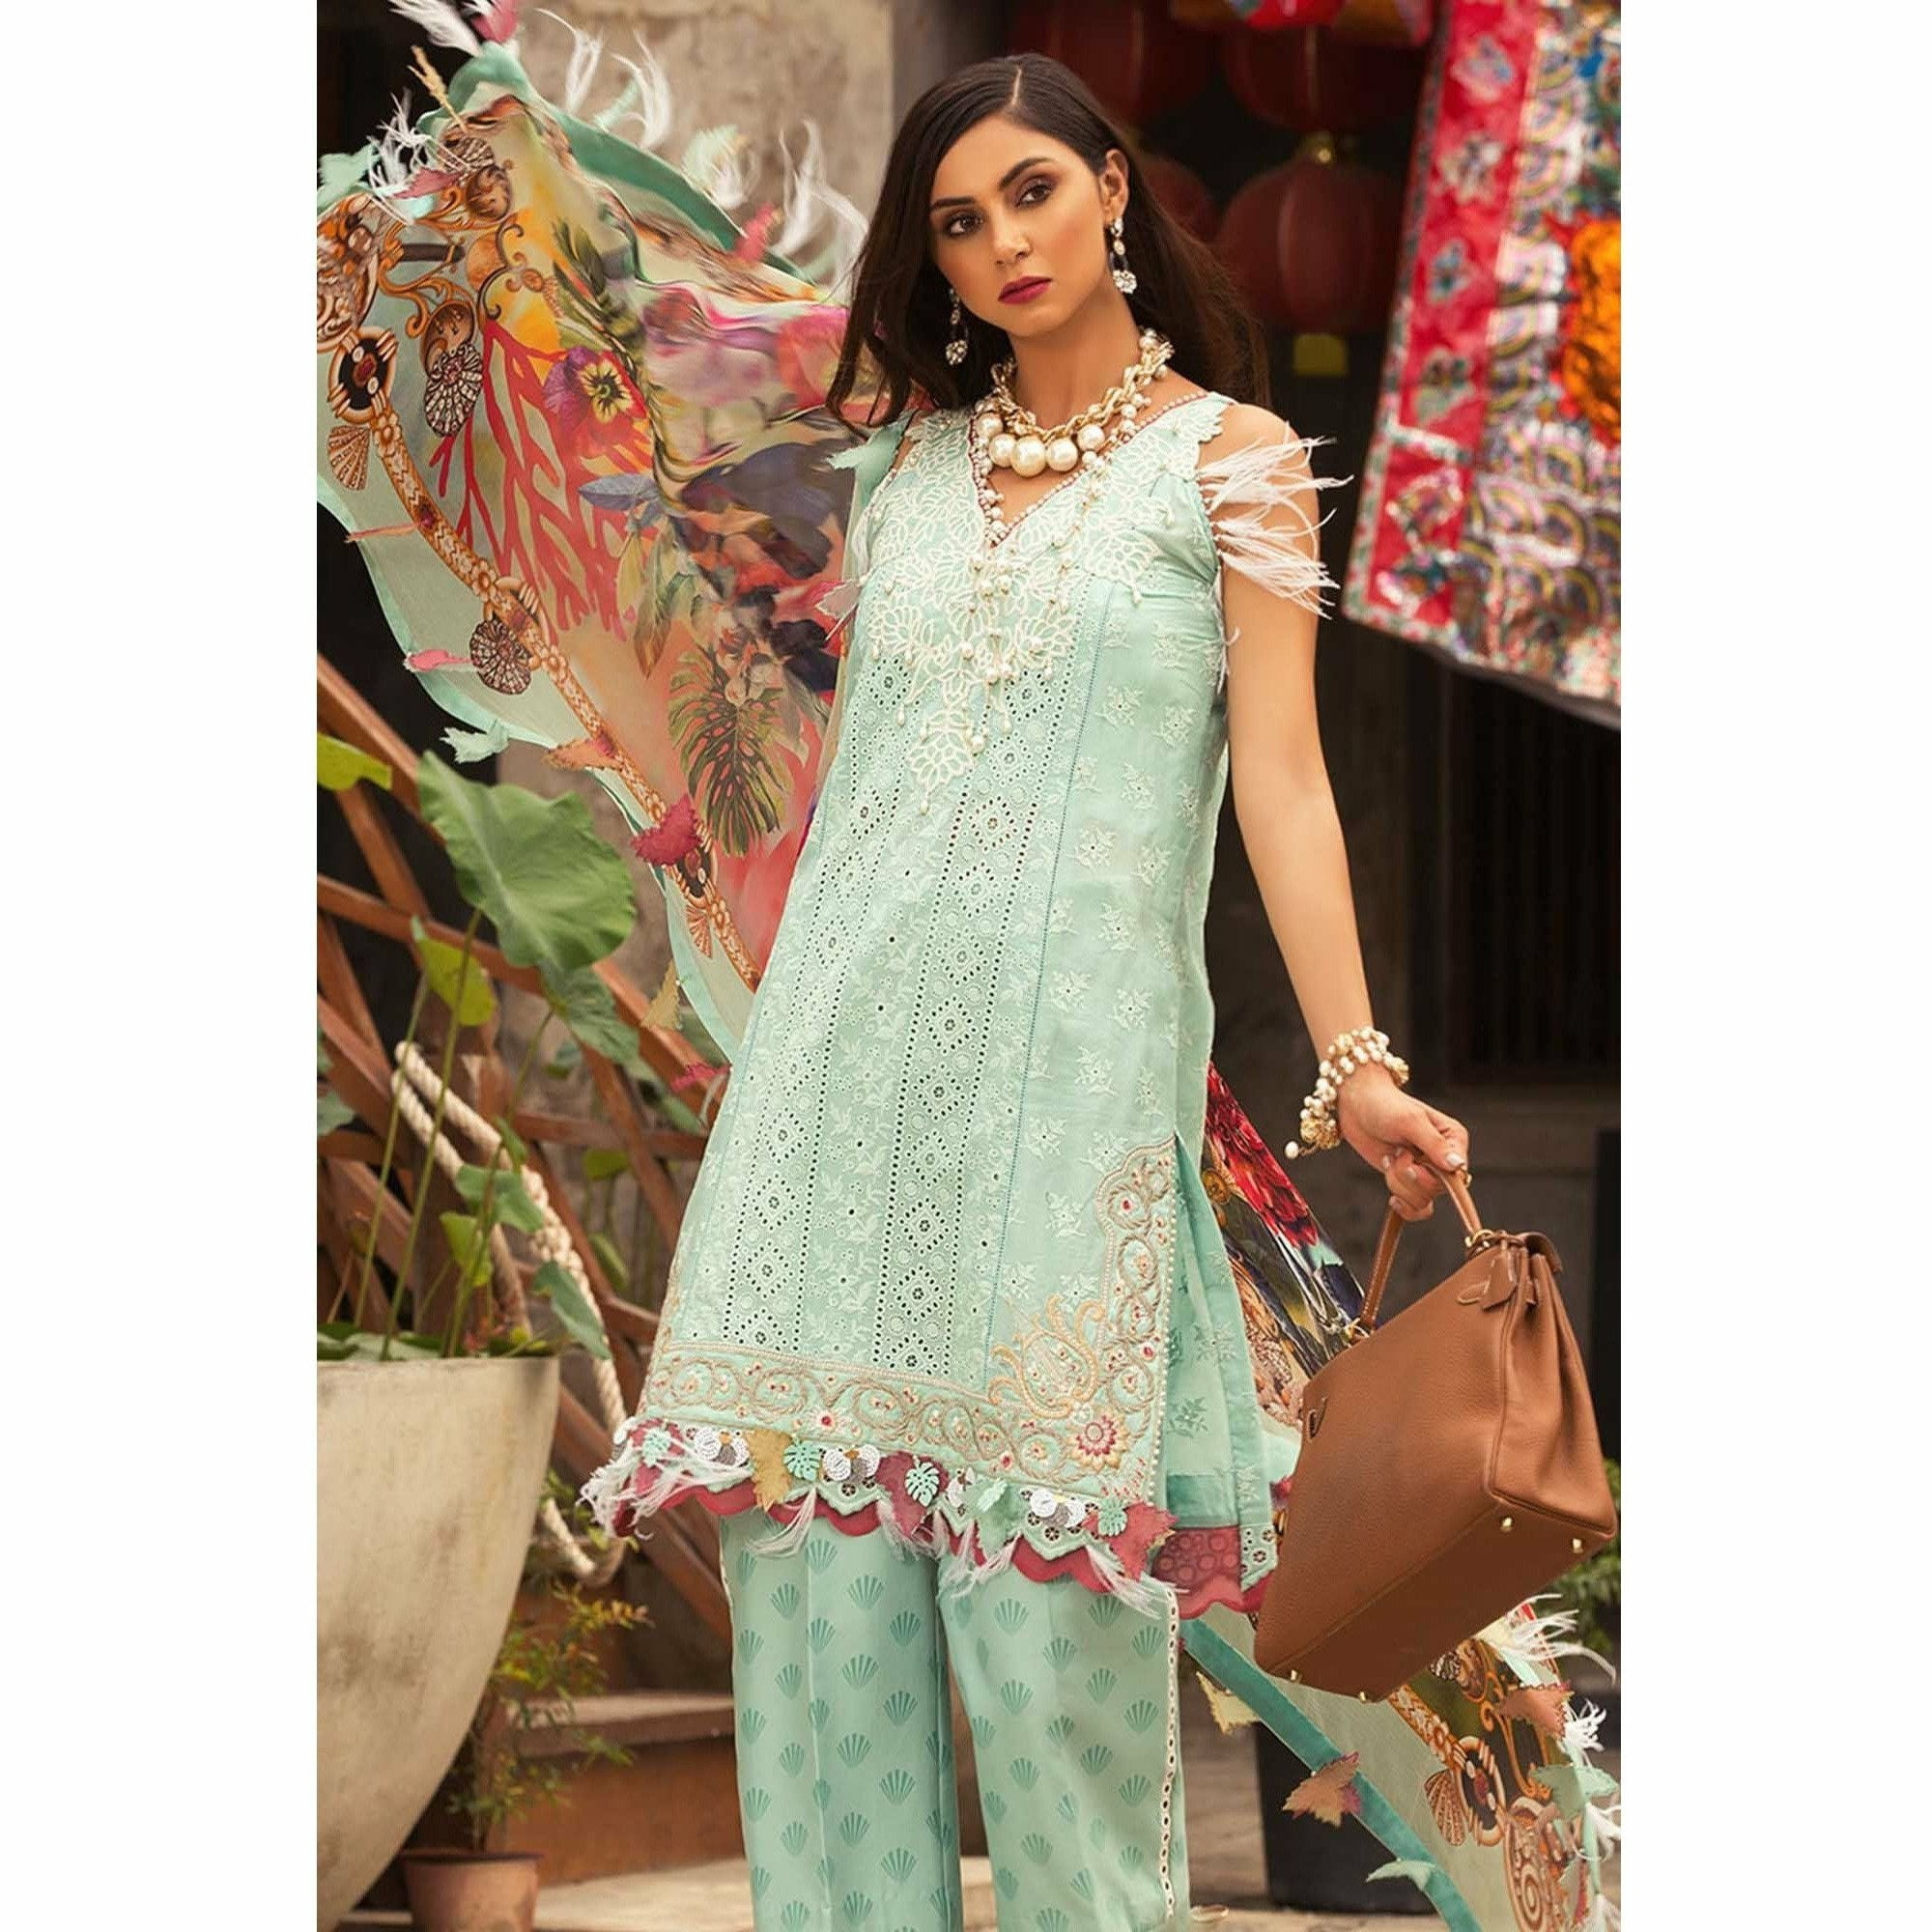 Noor by Saadia Asad | Luxury Lawn 19 - 04-B